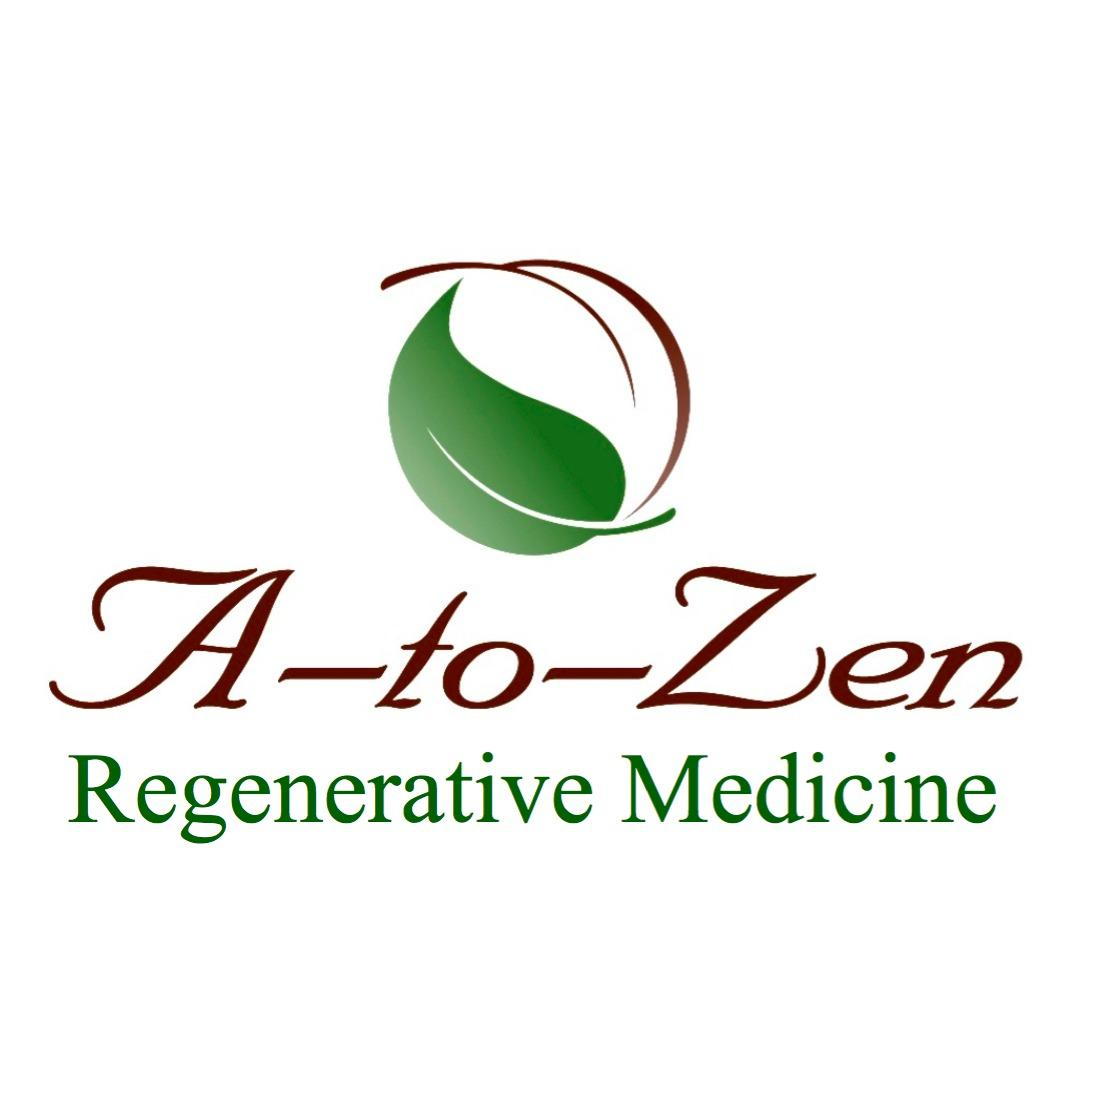 A-to-Zen Regenerative Medicine - Bellevue, WA 98004 - (425)615-6307 | ShowMeLocal.com